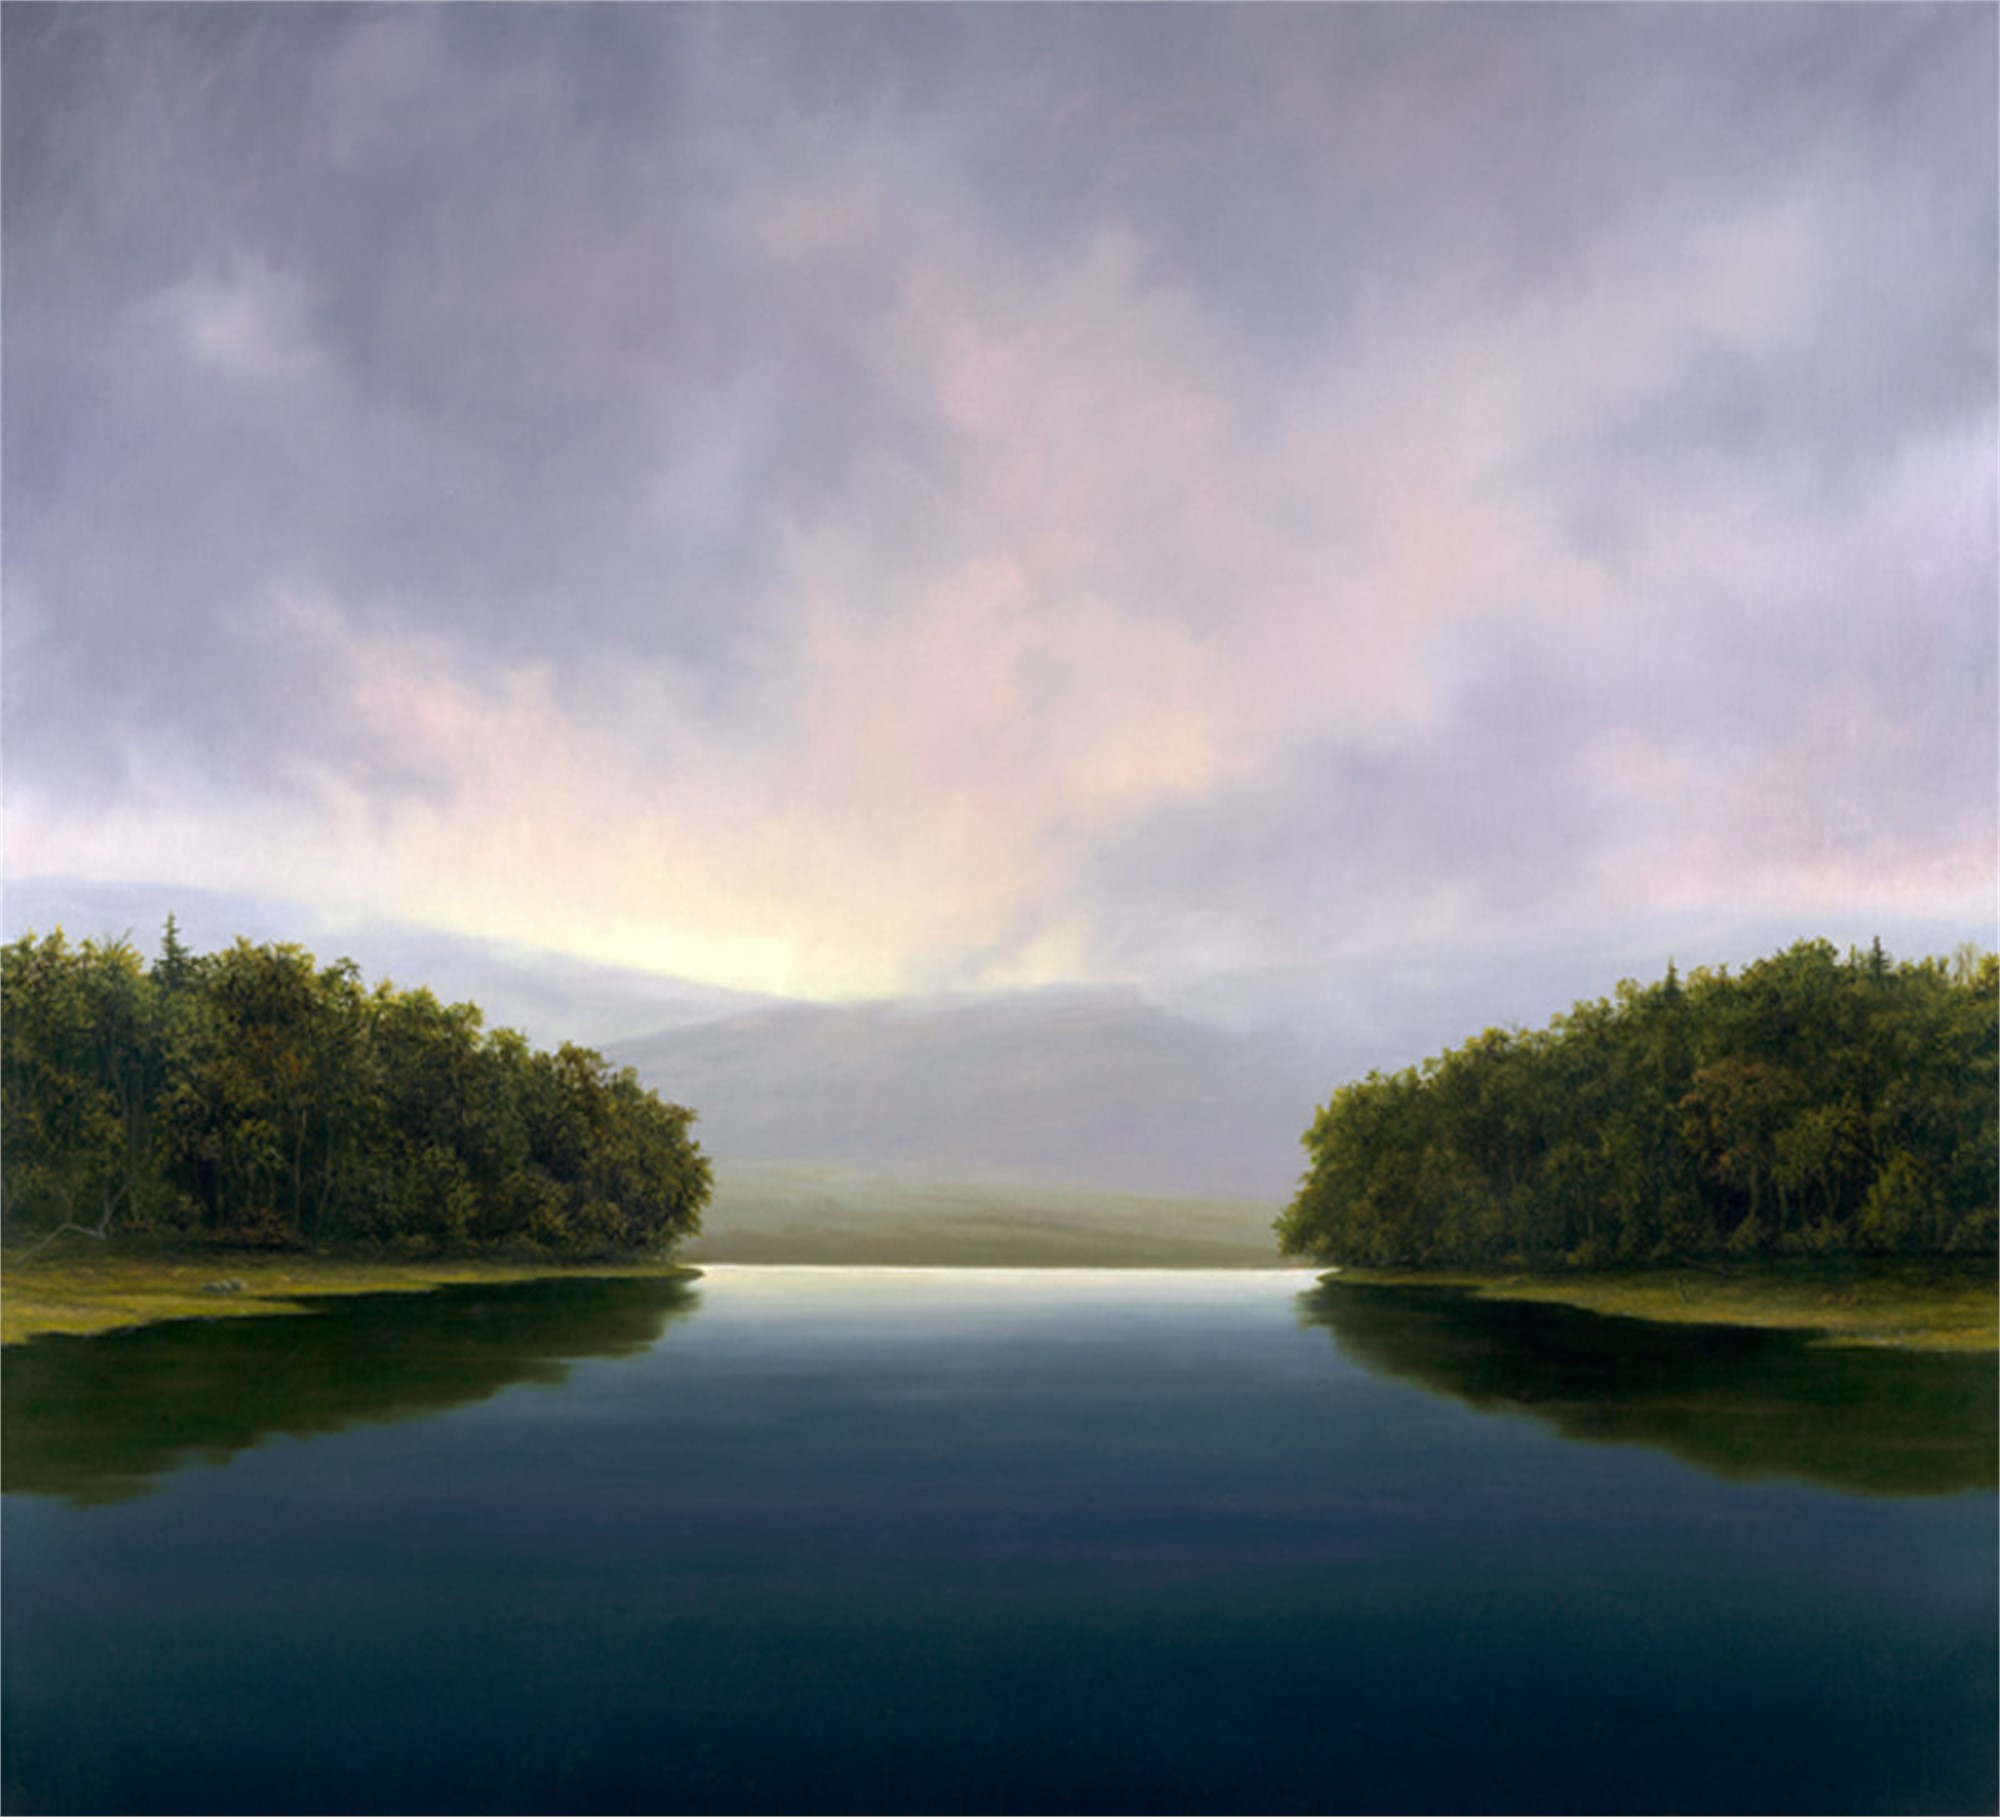 The Passage by Robert Bissell